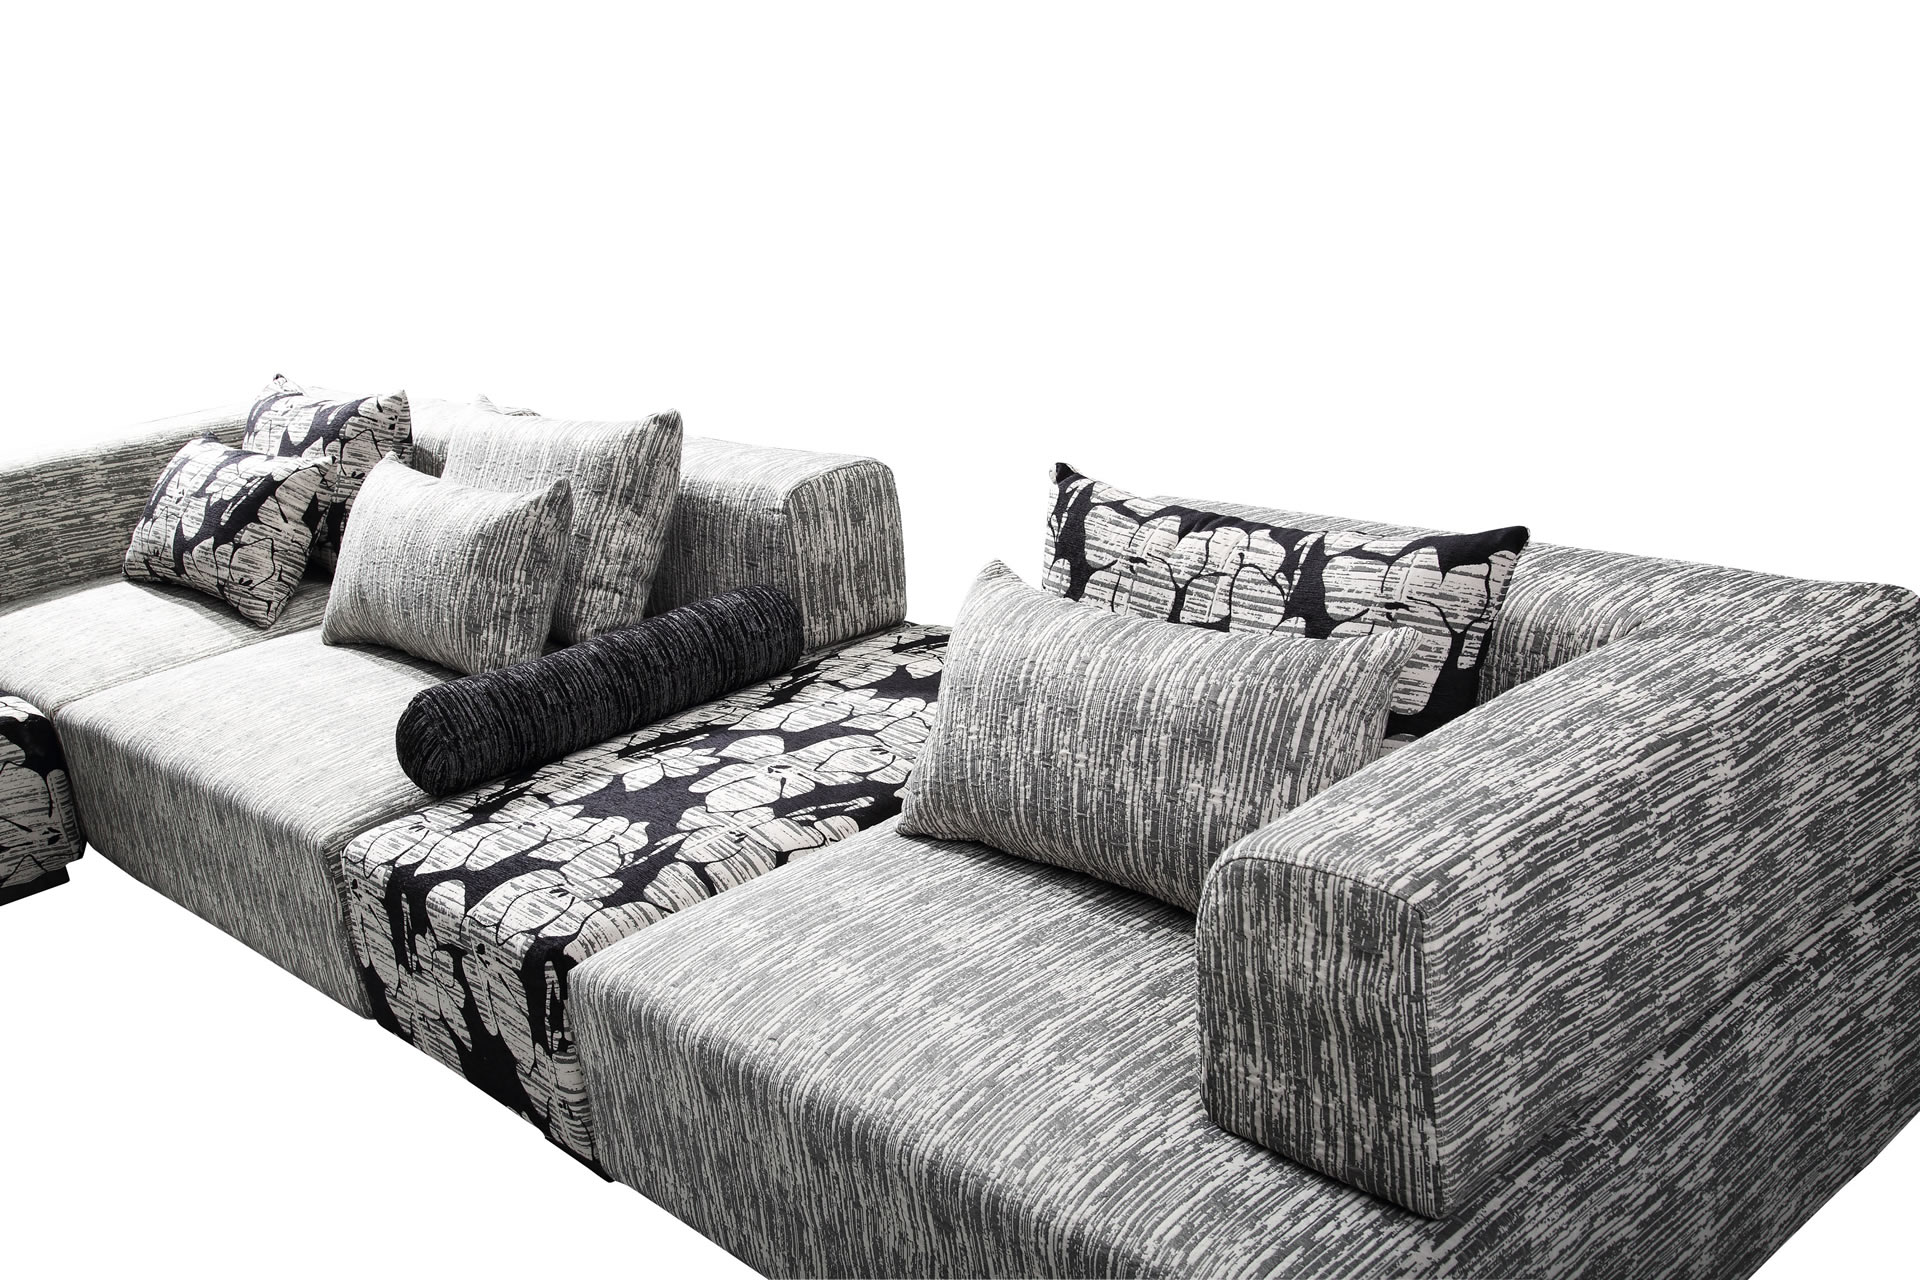 wohnlandschaft alina zebra designer sofa couch couchgarnitur eckgarnitur ecksof ebay. Black Bedroom Furniture Sets. Home Design Ideas